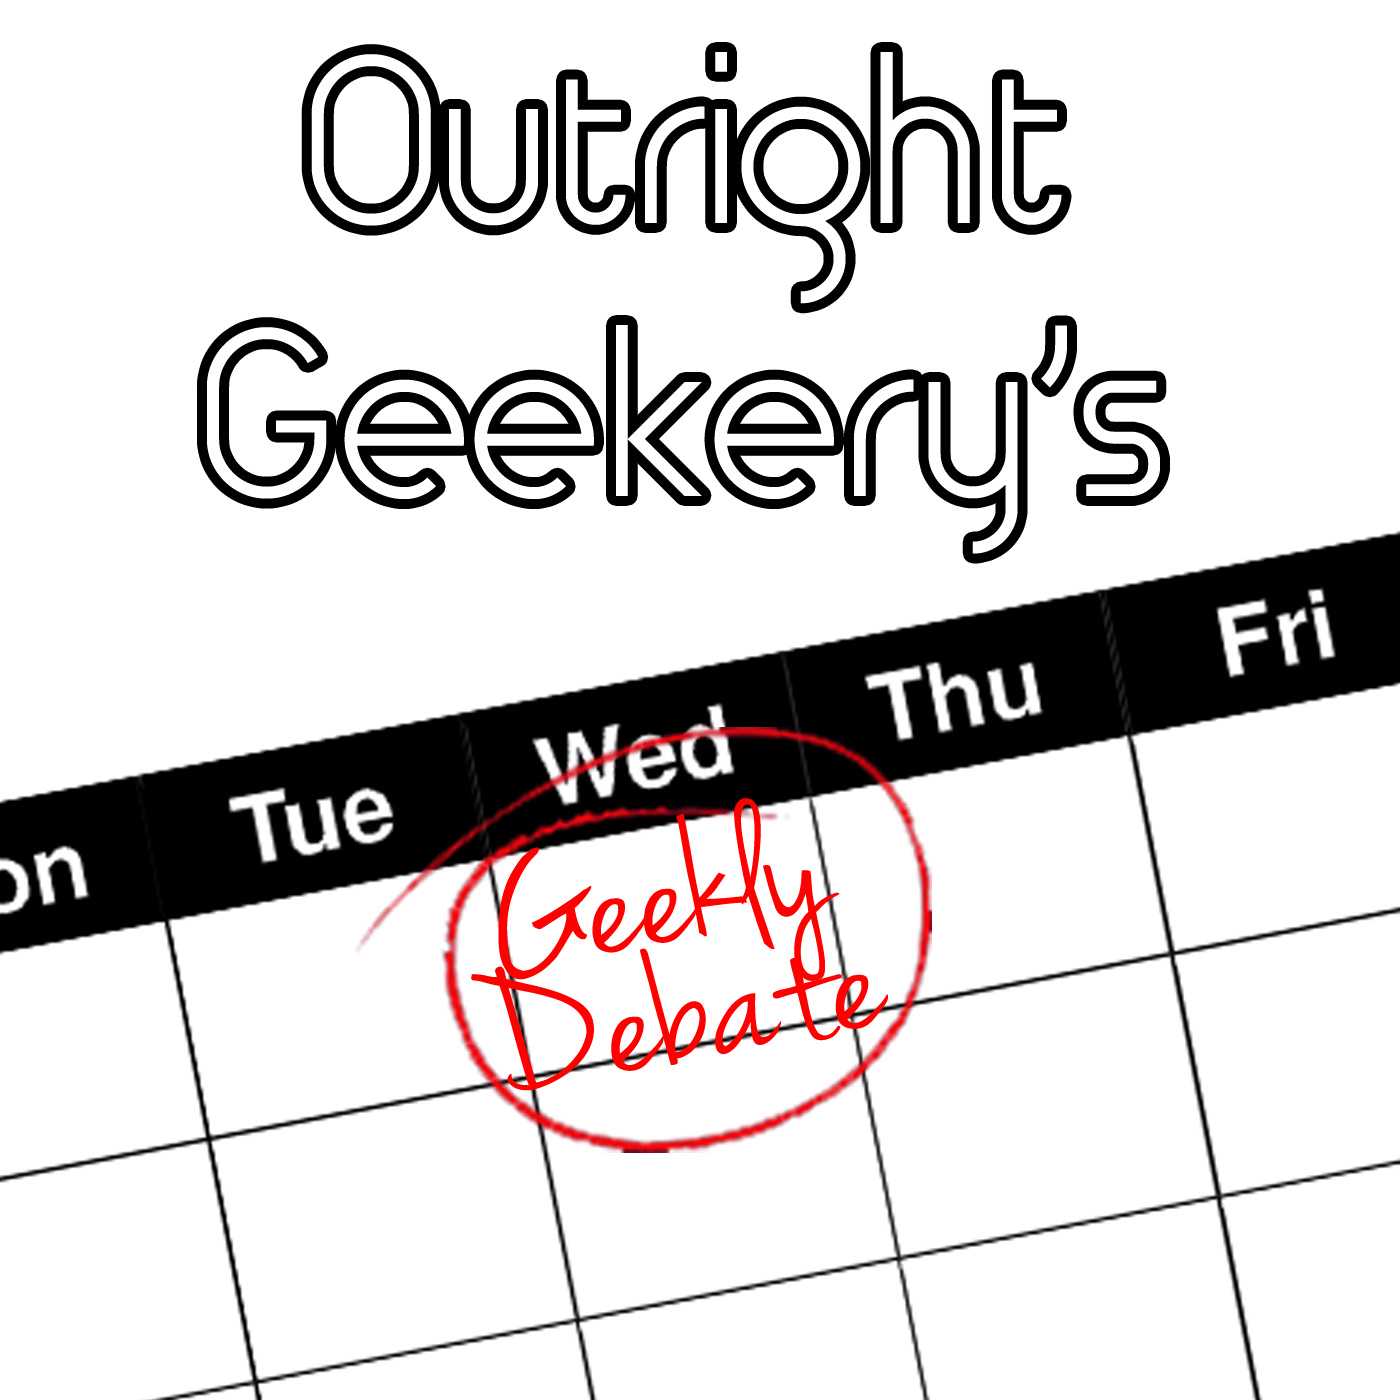 GeeklyDebate – Outright Geekery